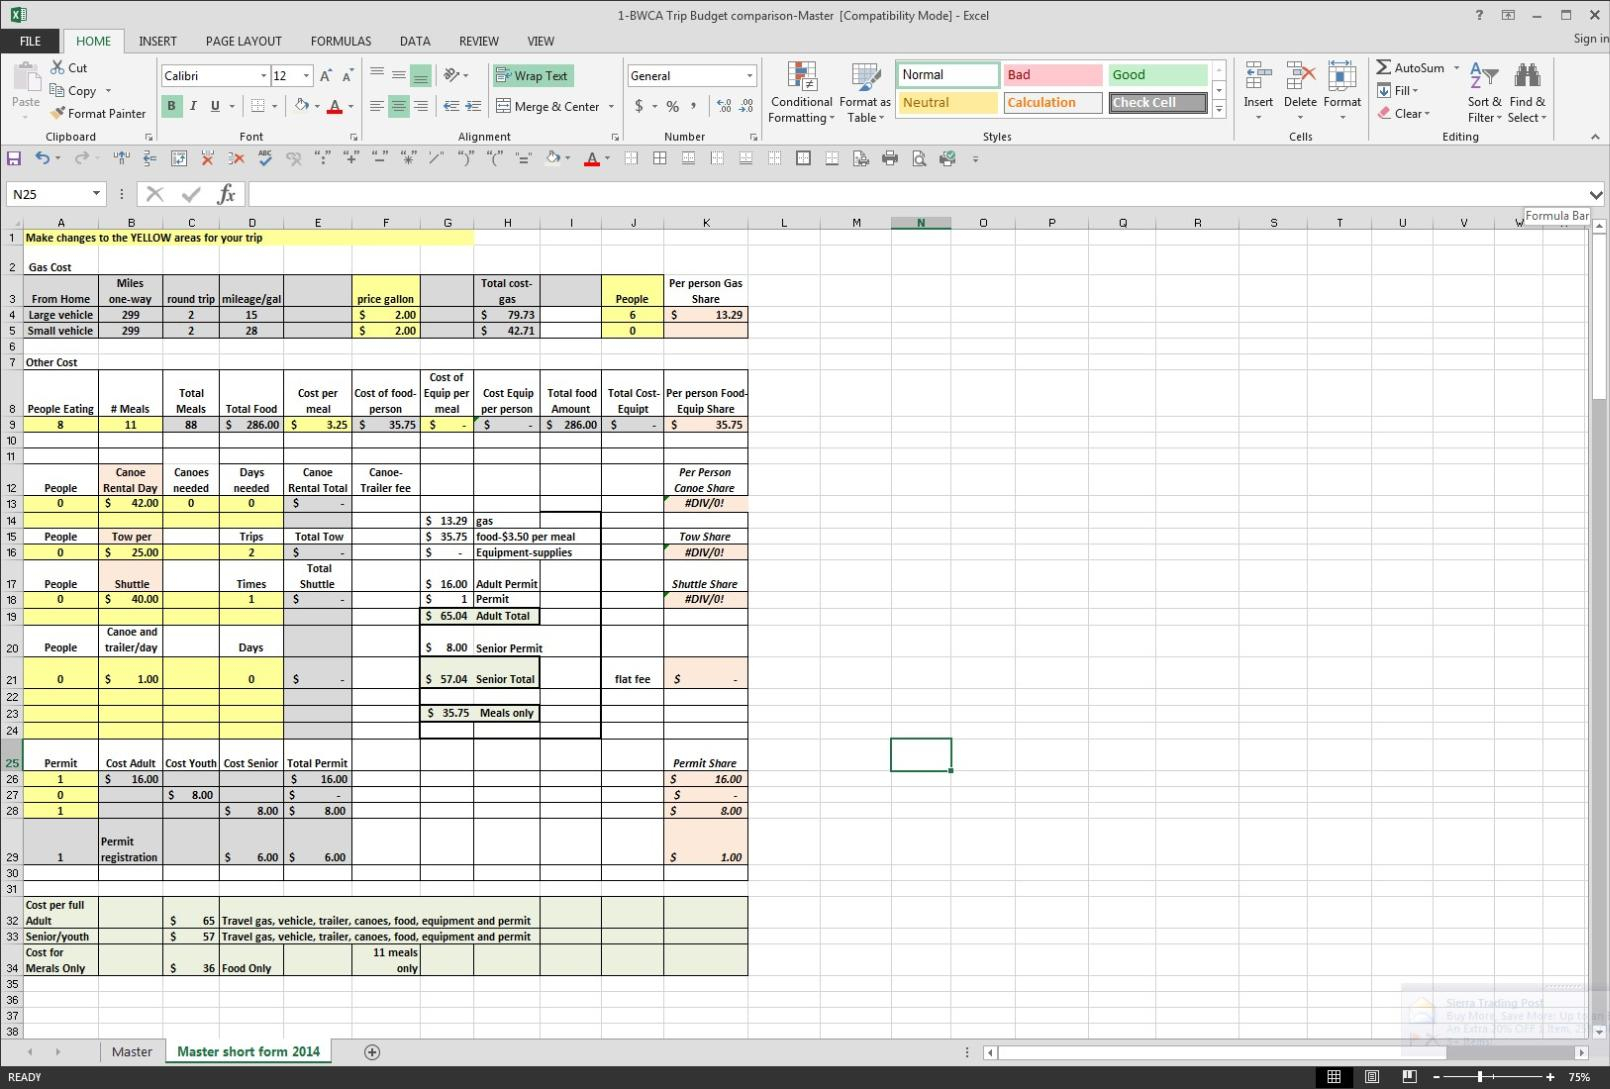 Truck Cost Per Mile Spreadsheet Regarding Trucking Cost